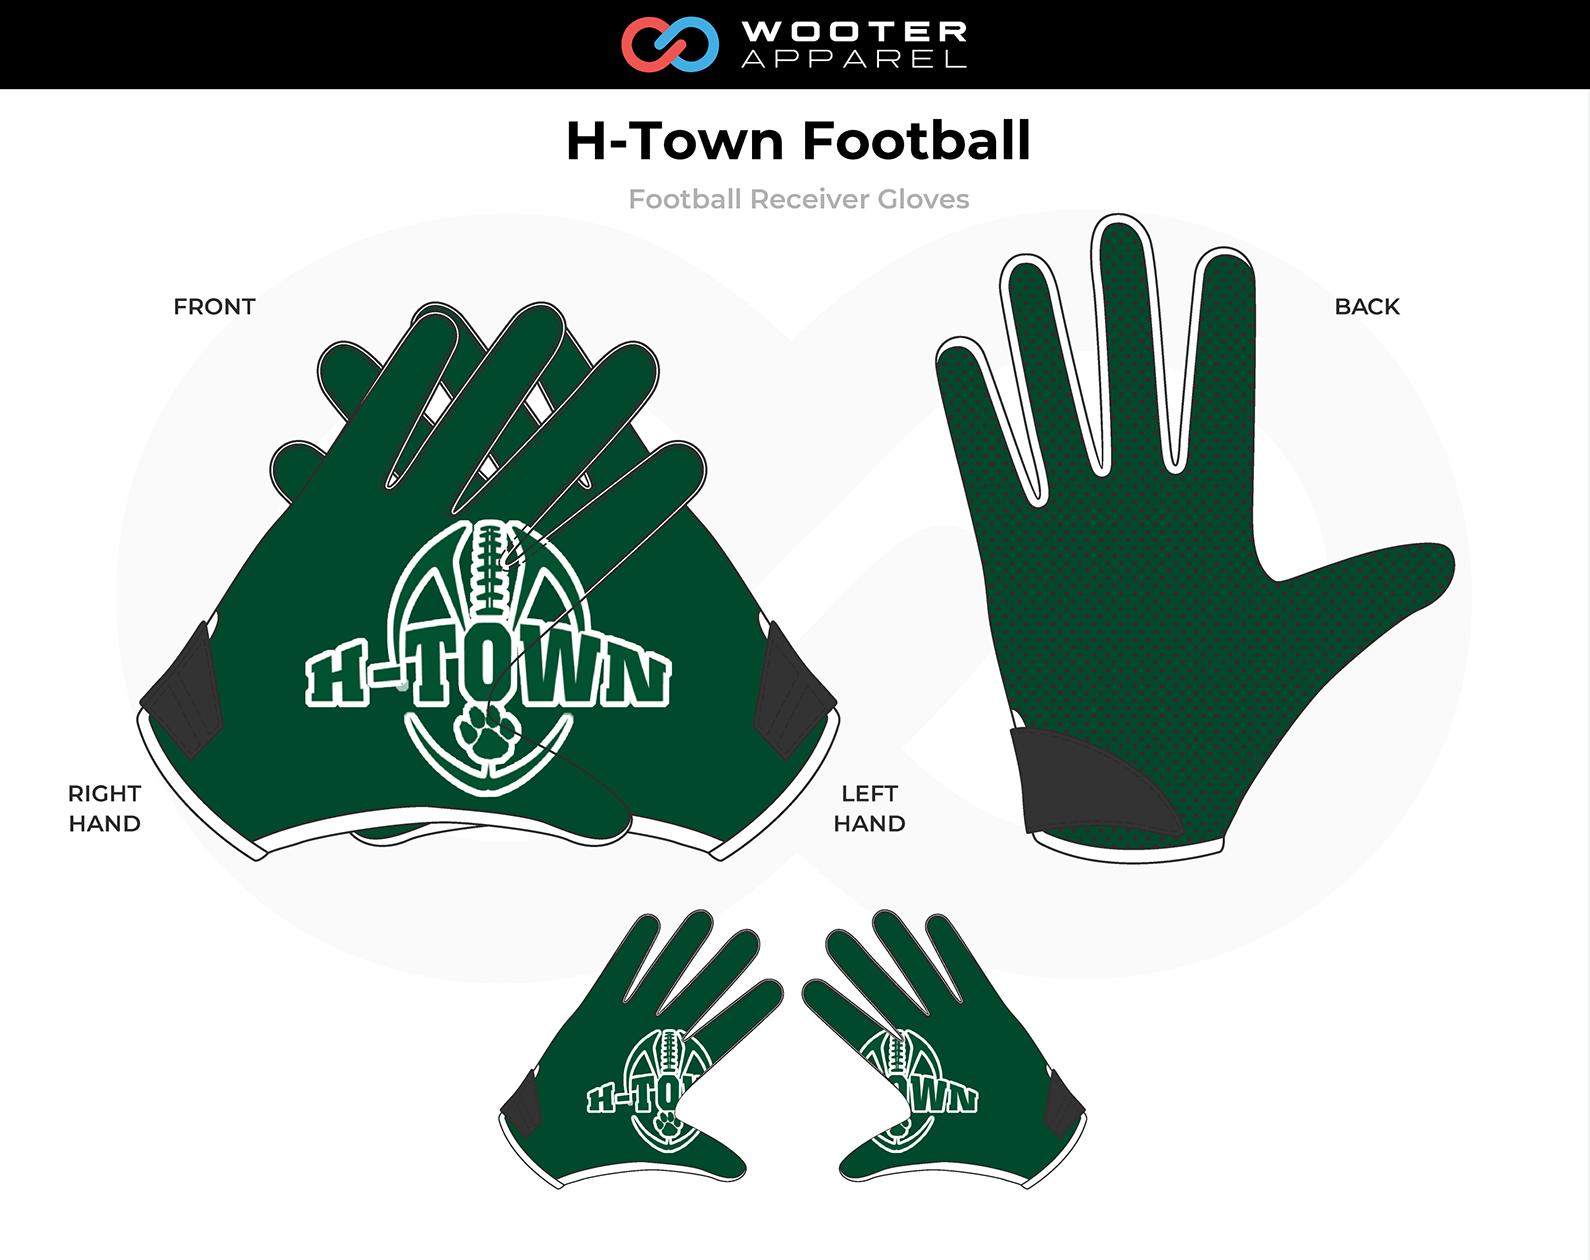 2019-06-14 H-Town Football Receiver Gloves (B).png